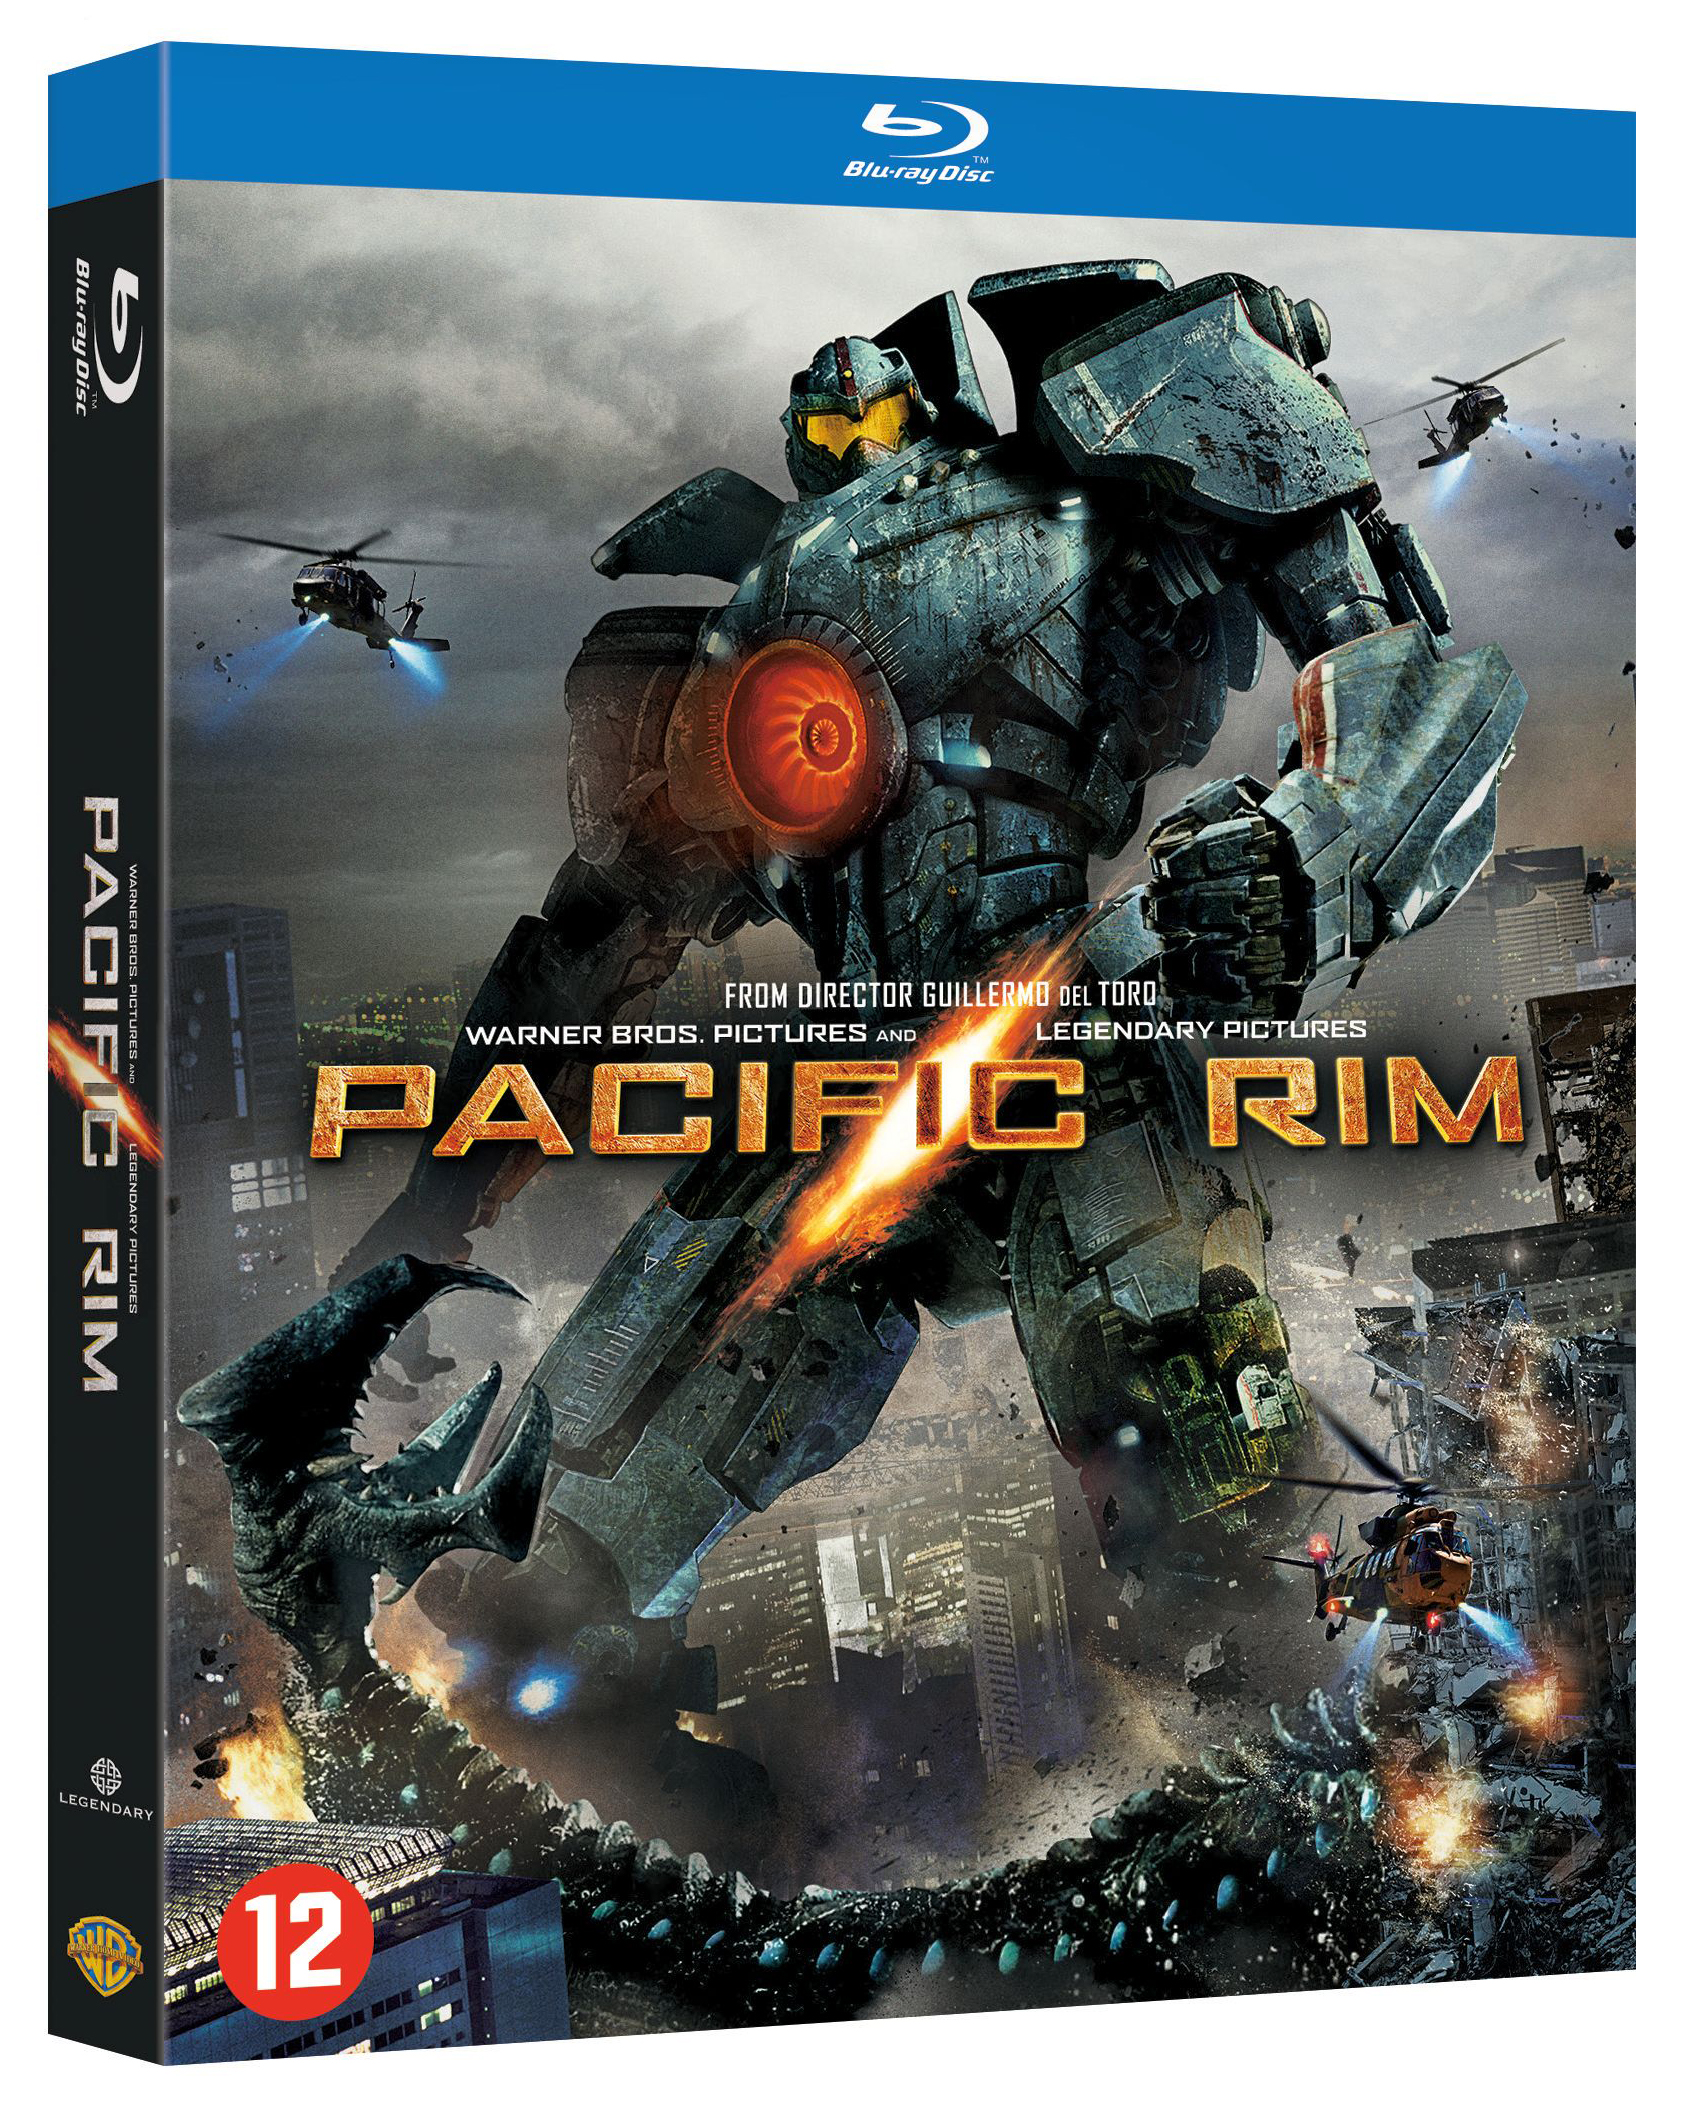 [Test Blu-ray] Pacific Rim | Cinérama Pacific Rim 2013 Bluray